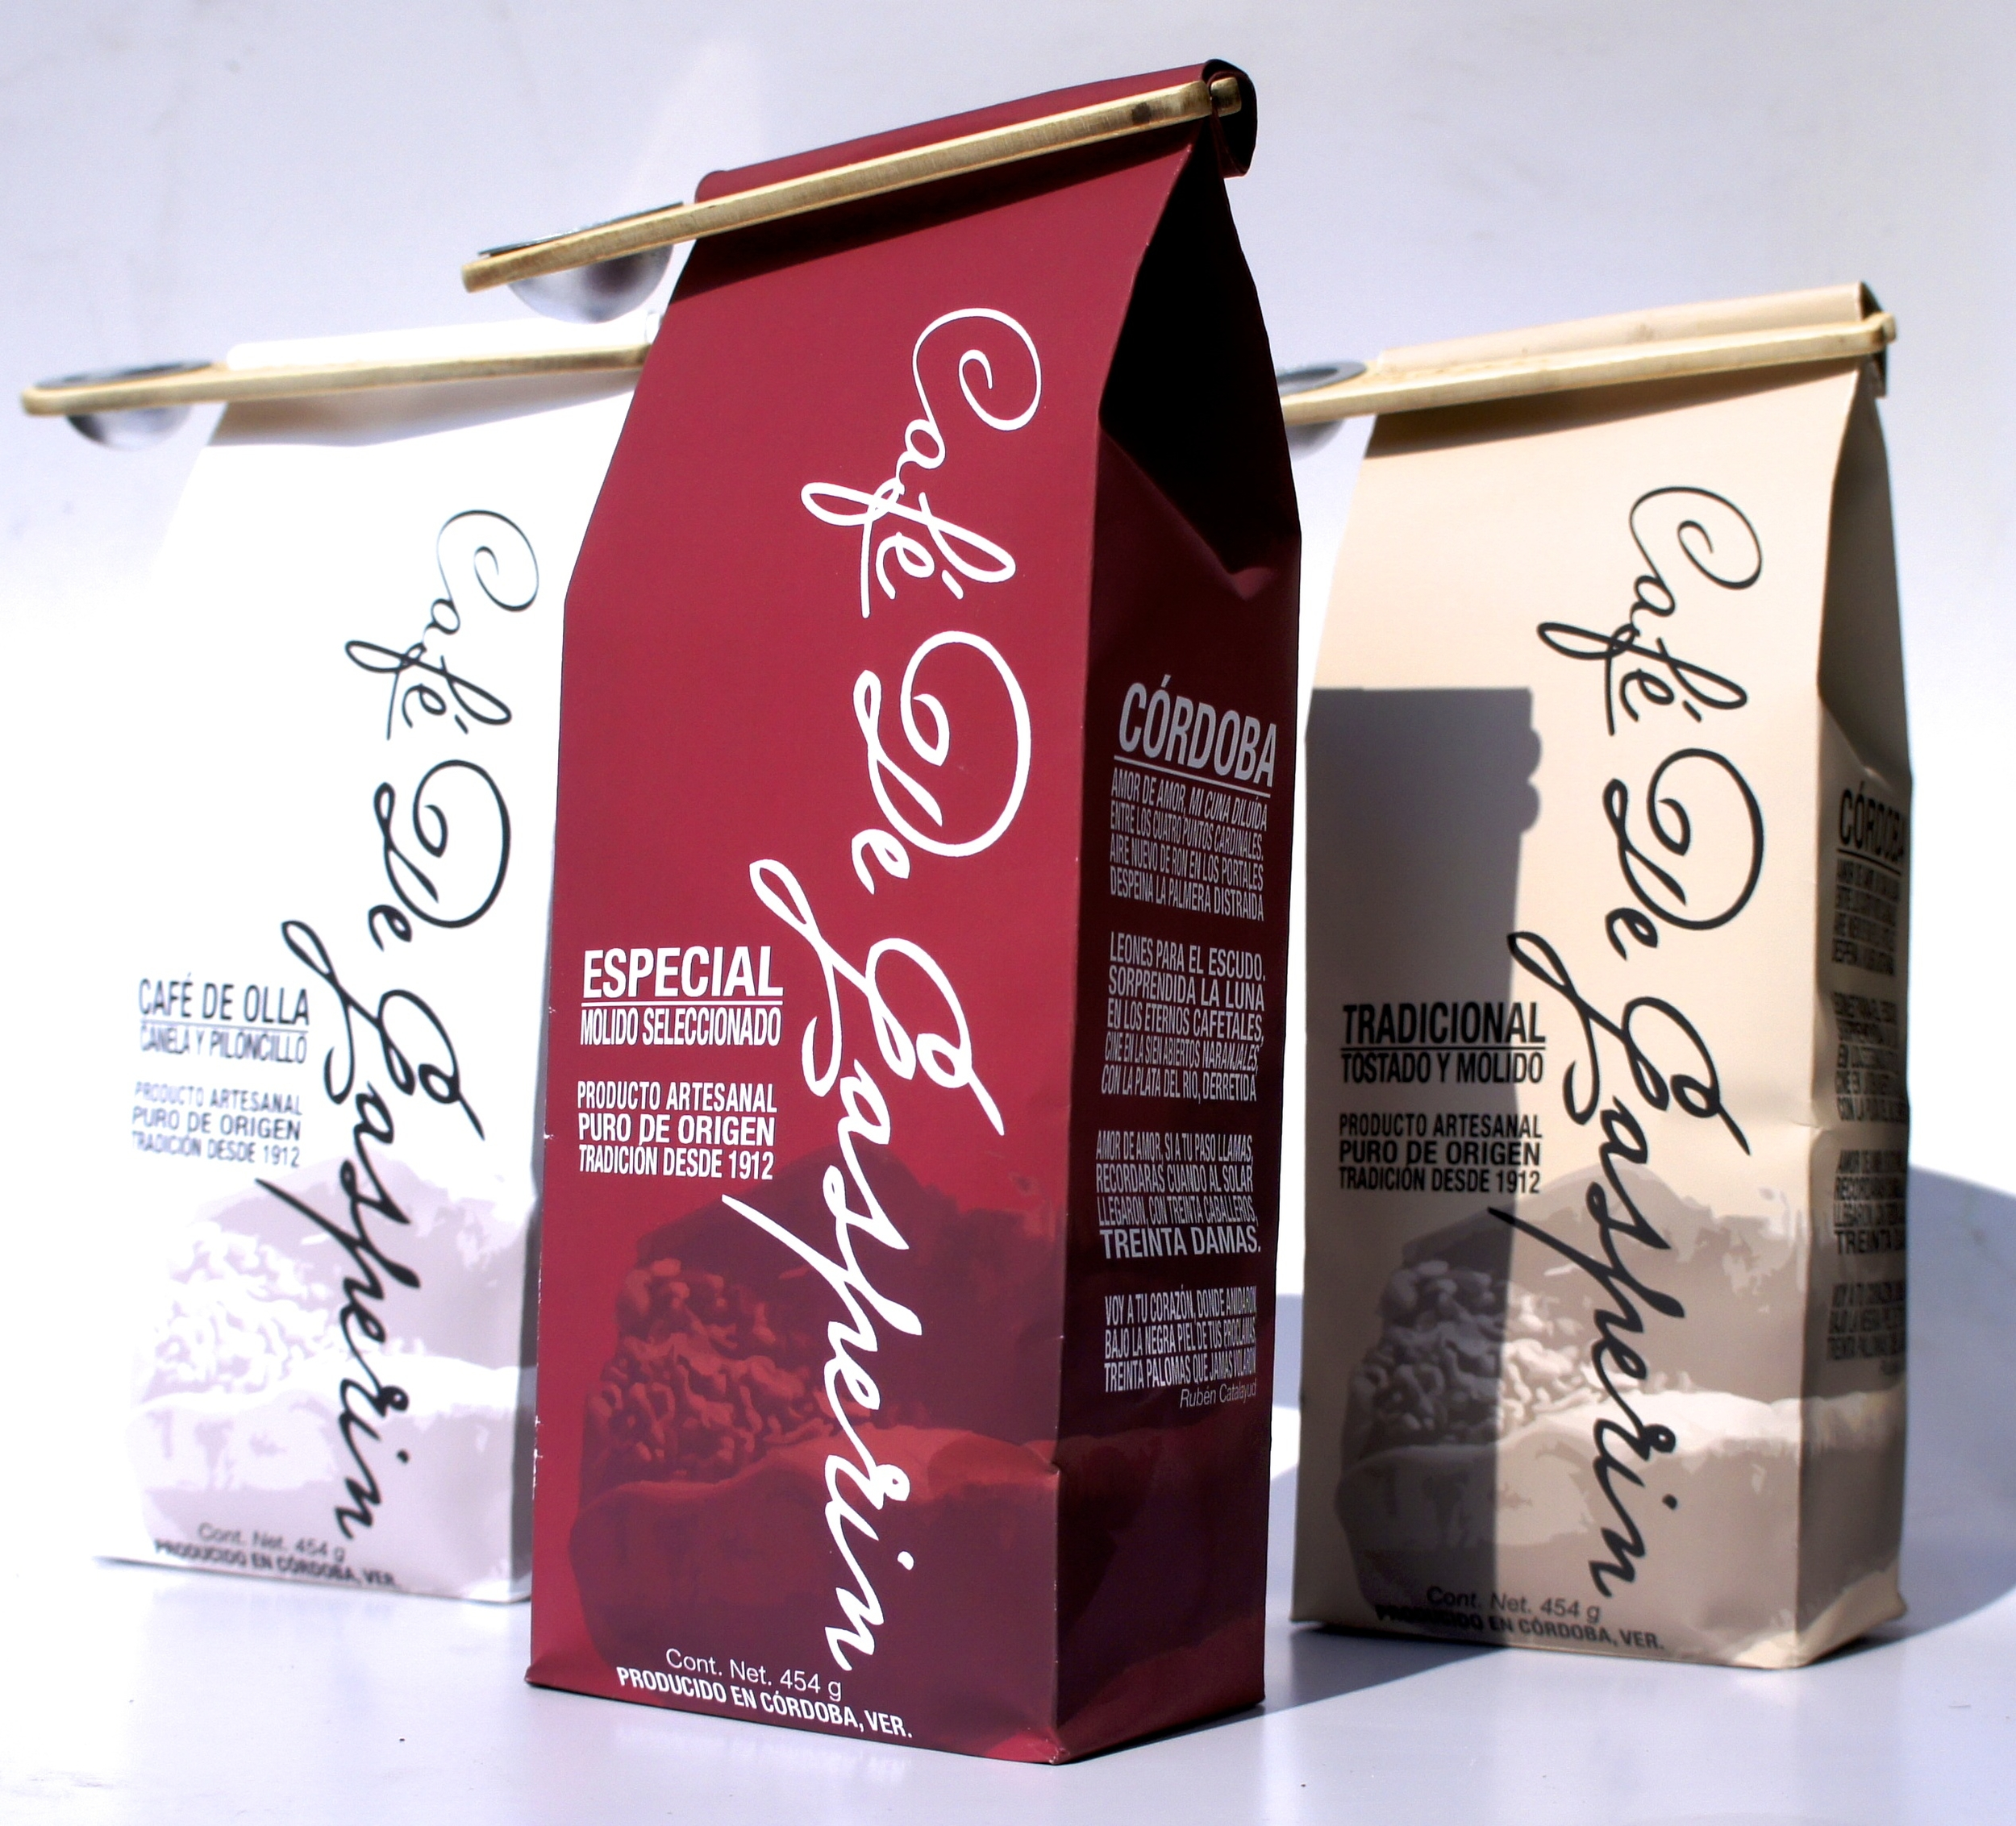 The new packaging and image highlights De Gasperin's values.